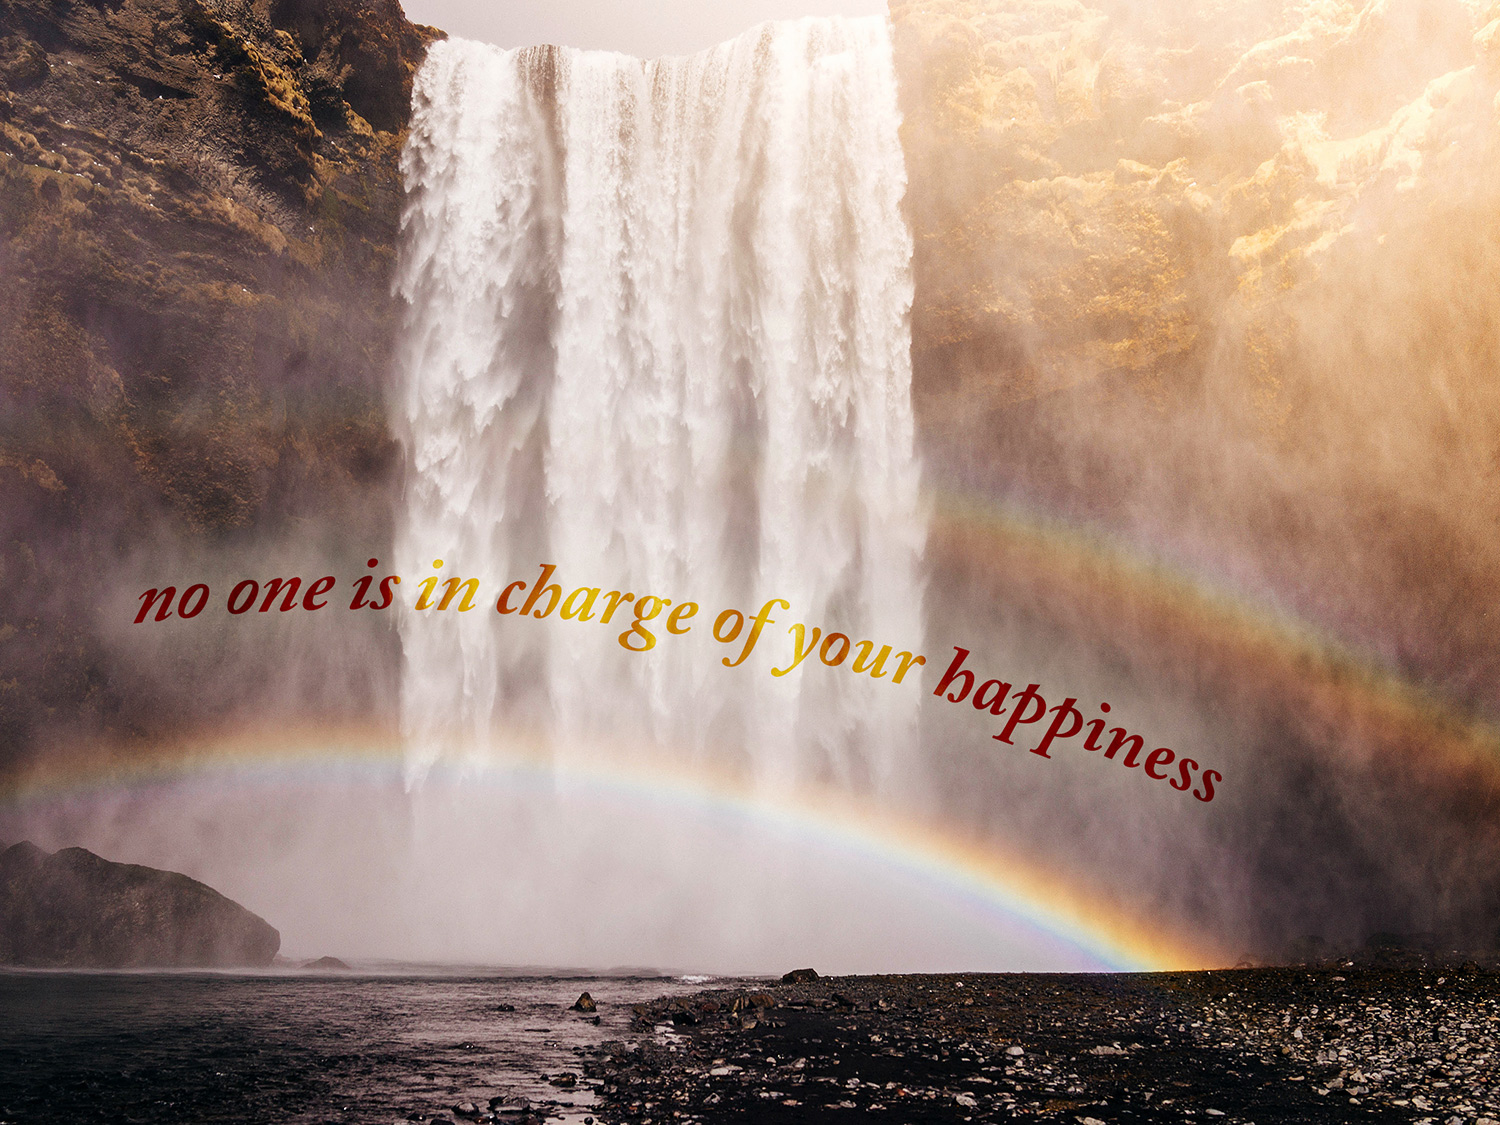 daily inspirational quote image: a waterfall in the early morning creating a beautiful rainbow